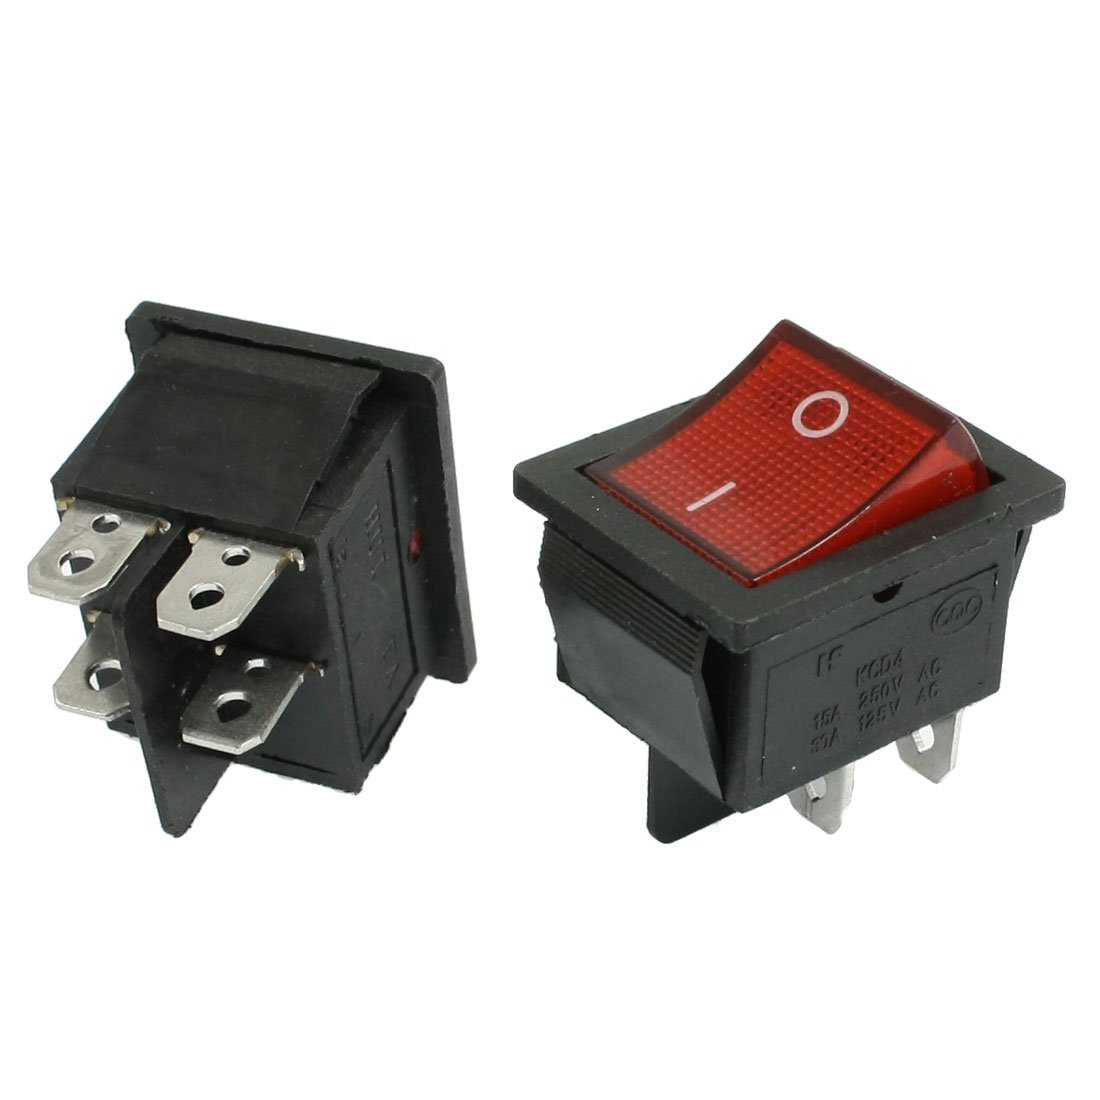 Rocker Switches For Boats Online Shopping Buy Rocker Switches For Boats At Dhgate Com